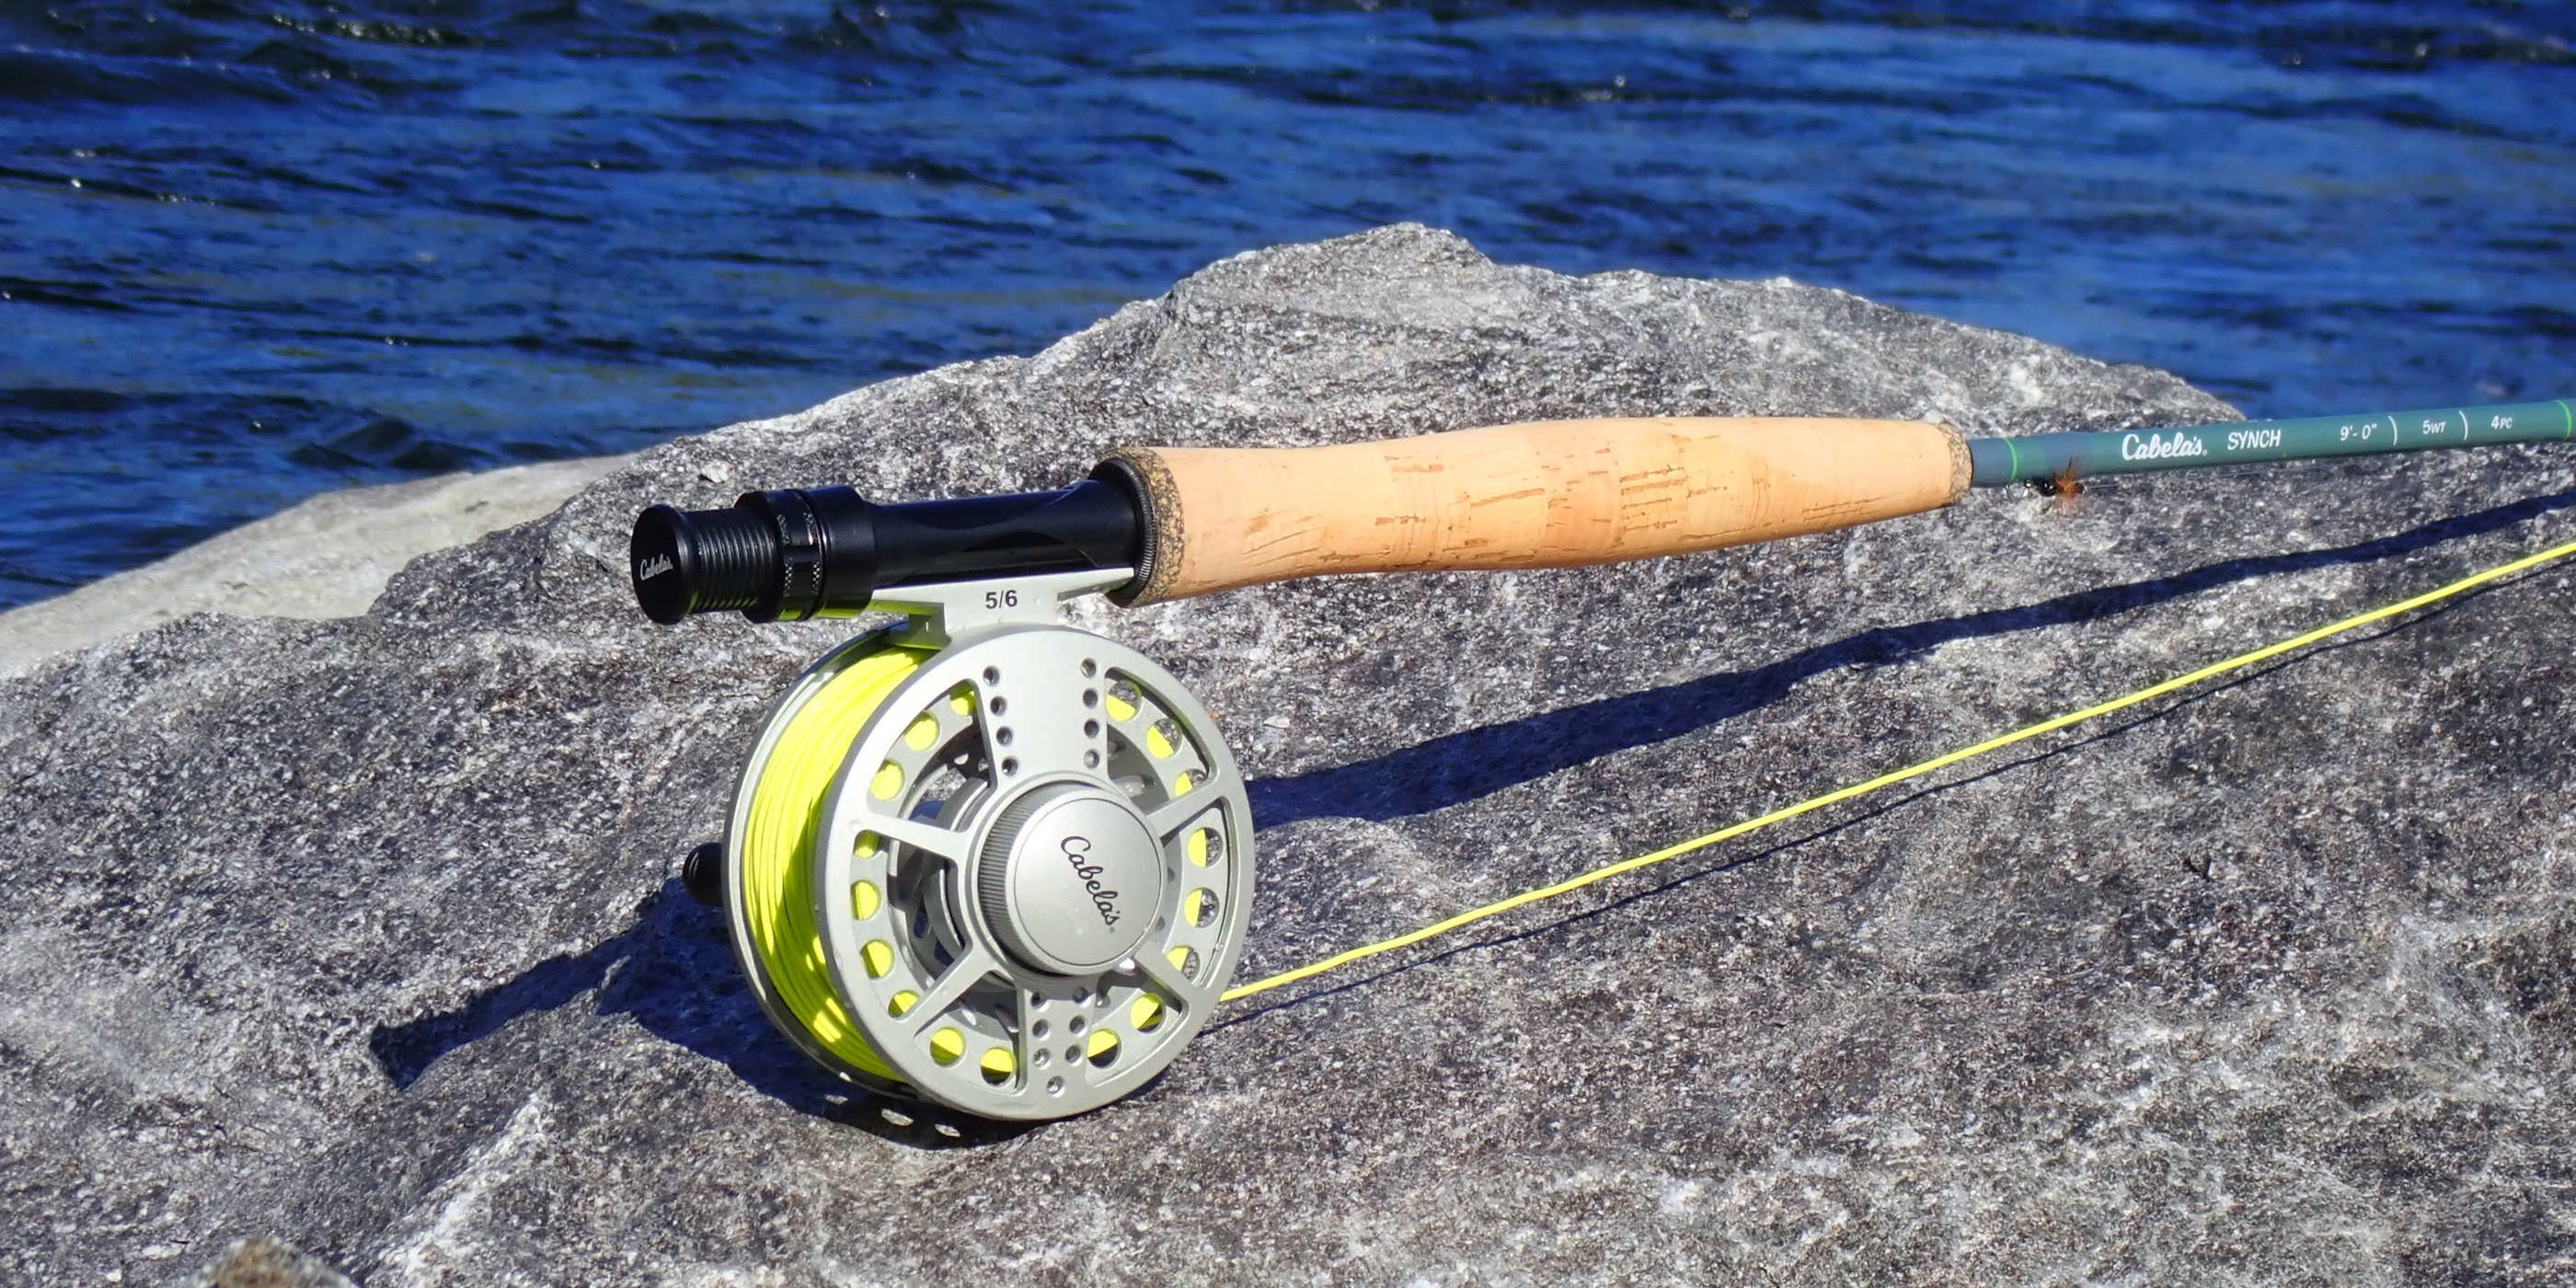 6a7dc8f43 Cabela s Synch Fly Rod   Reel Combo Review